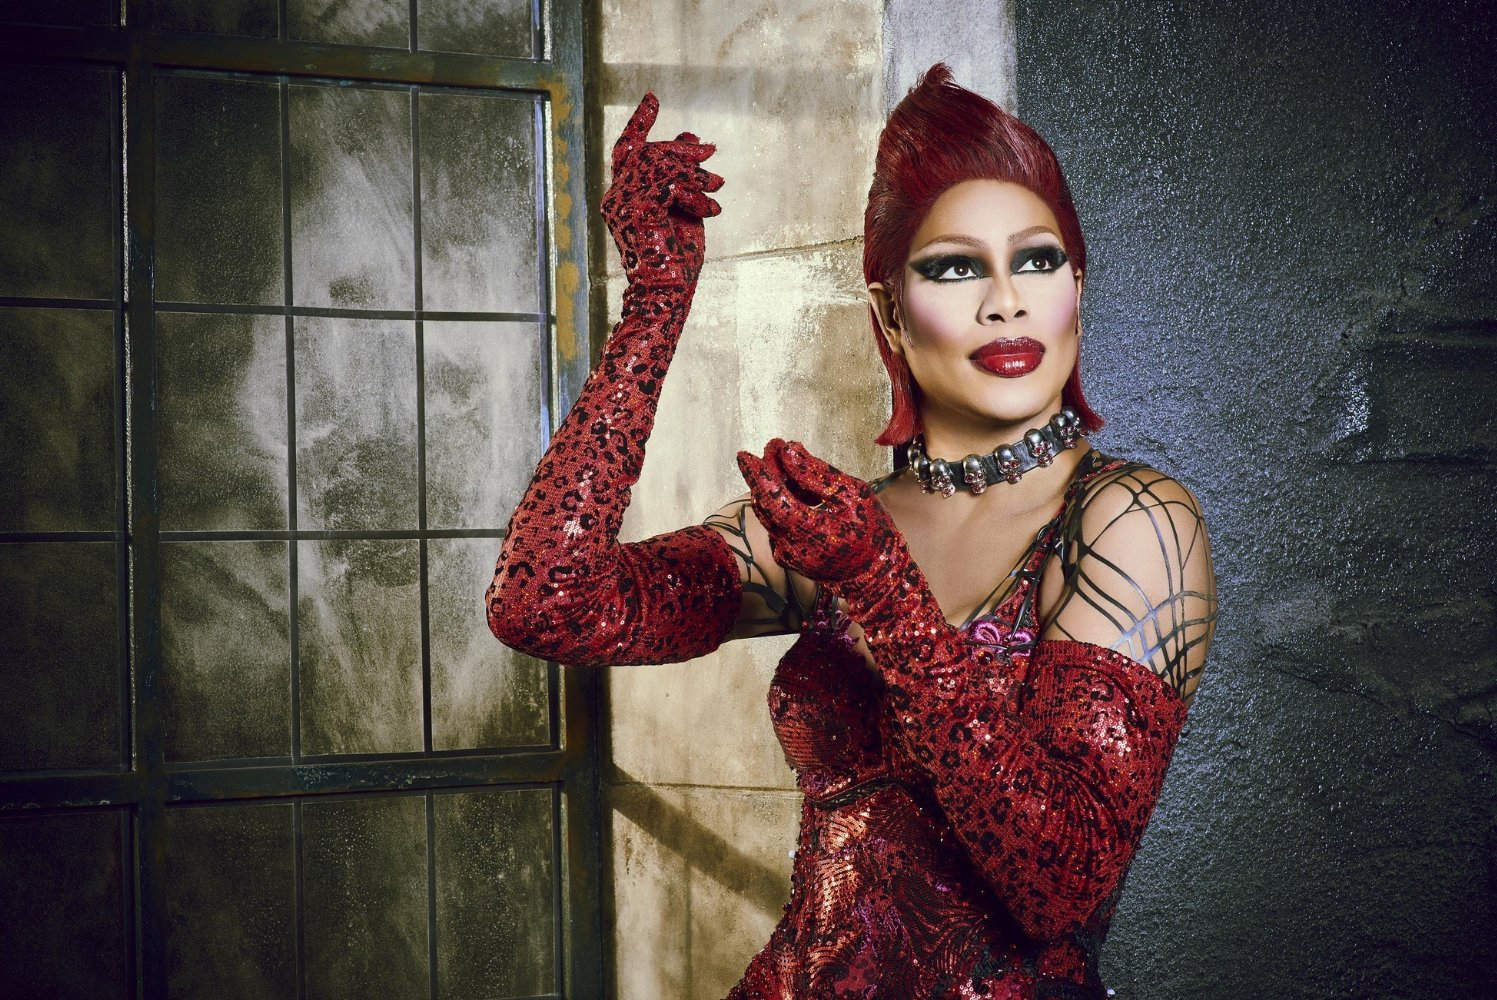 Laverne Cox as Dr. Frank-N-Furter in the TV movie The Rocky Horror Picture Show: Let's Do the Time Warp Again from 2016.